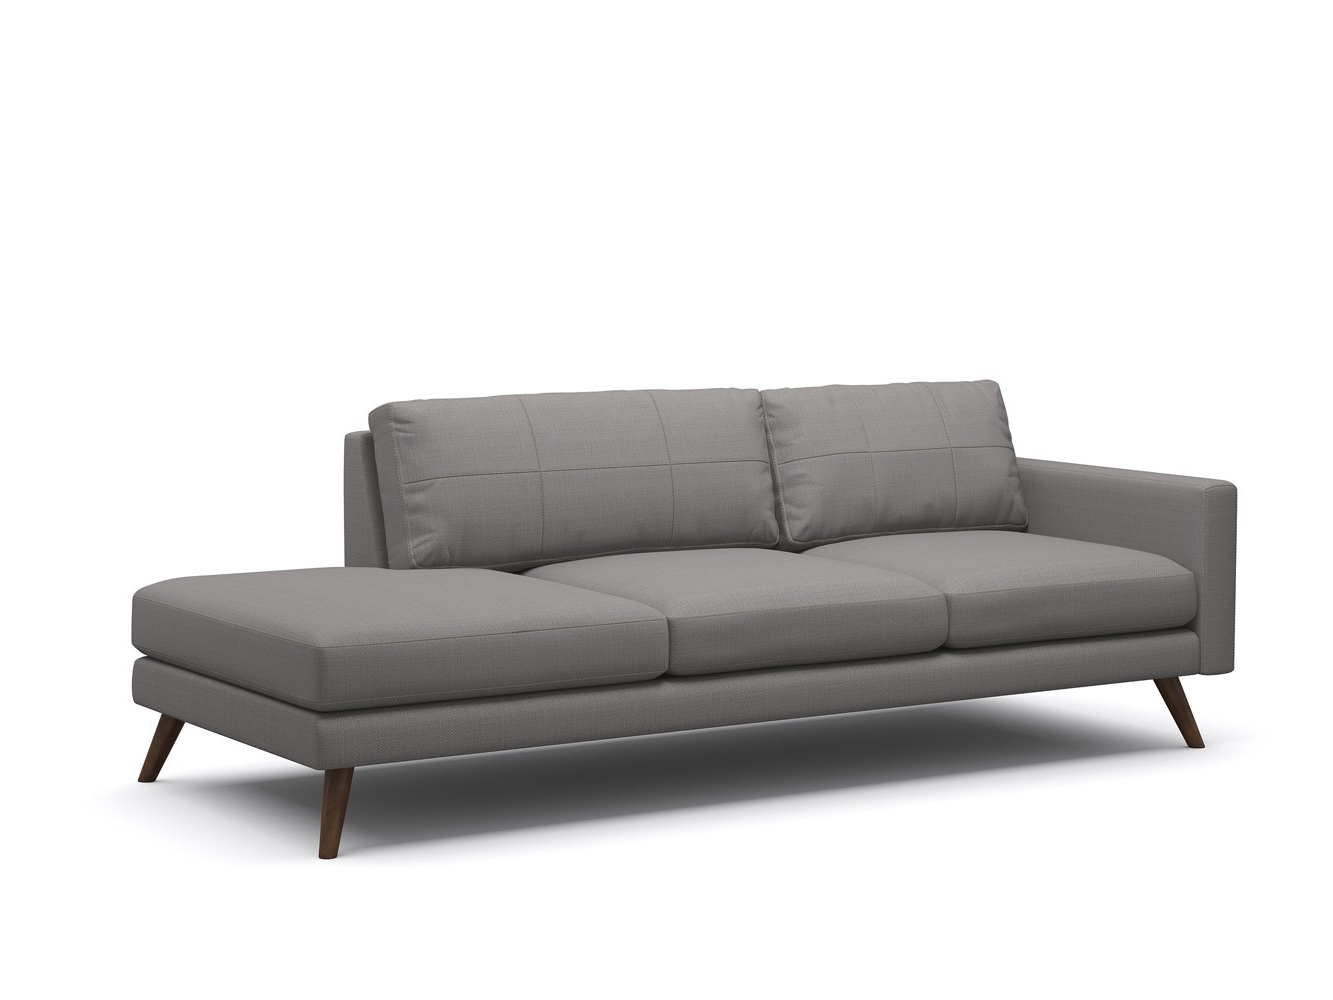 One Arm Chaises Pertaining To Fashionable Dane One Arm Sofa With Chaise Sofa – Truemodern™ (View 9 of 15)